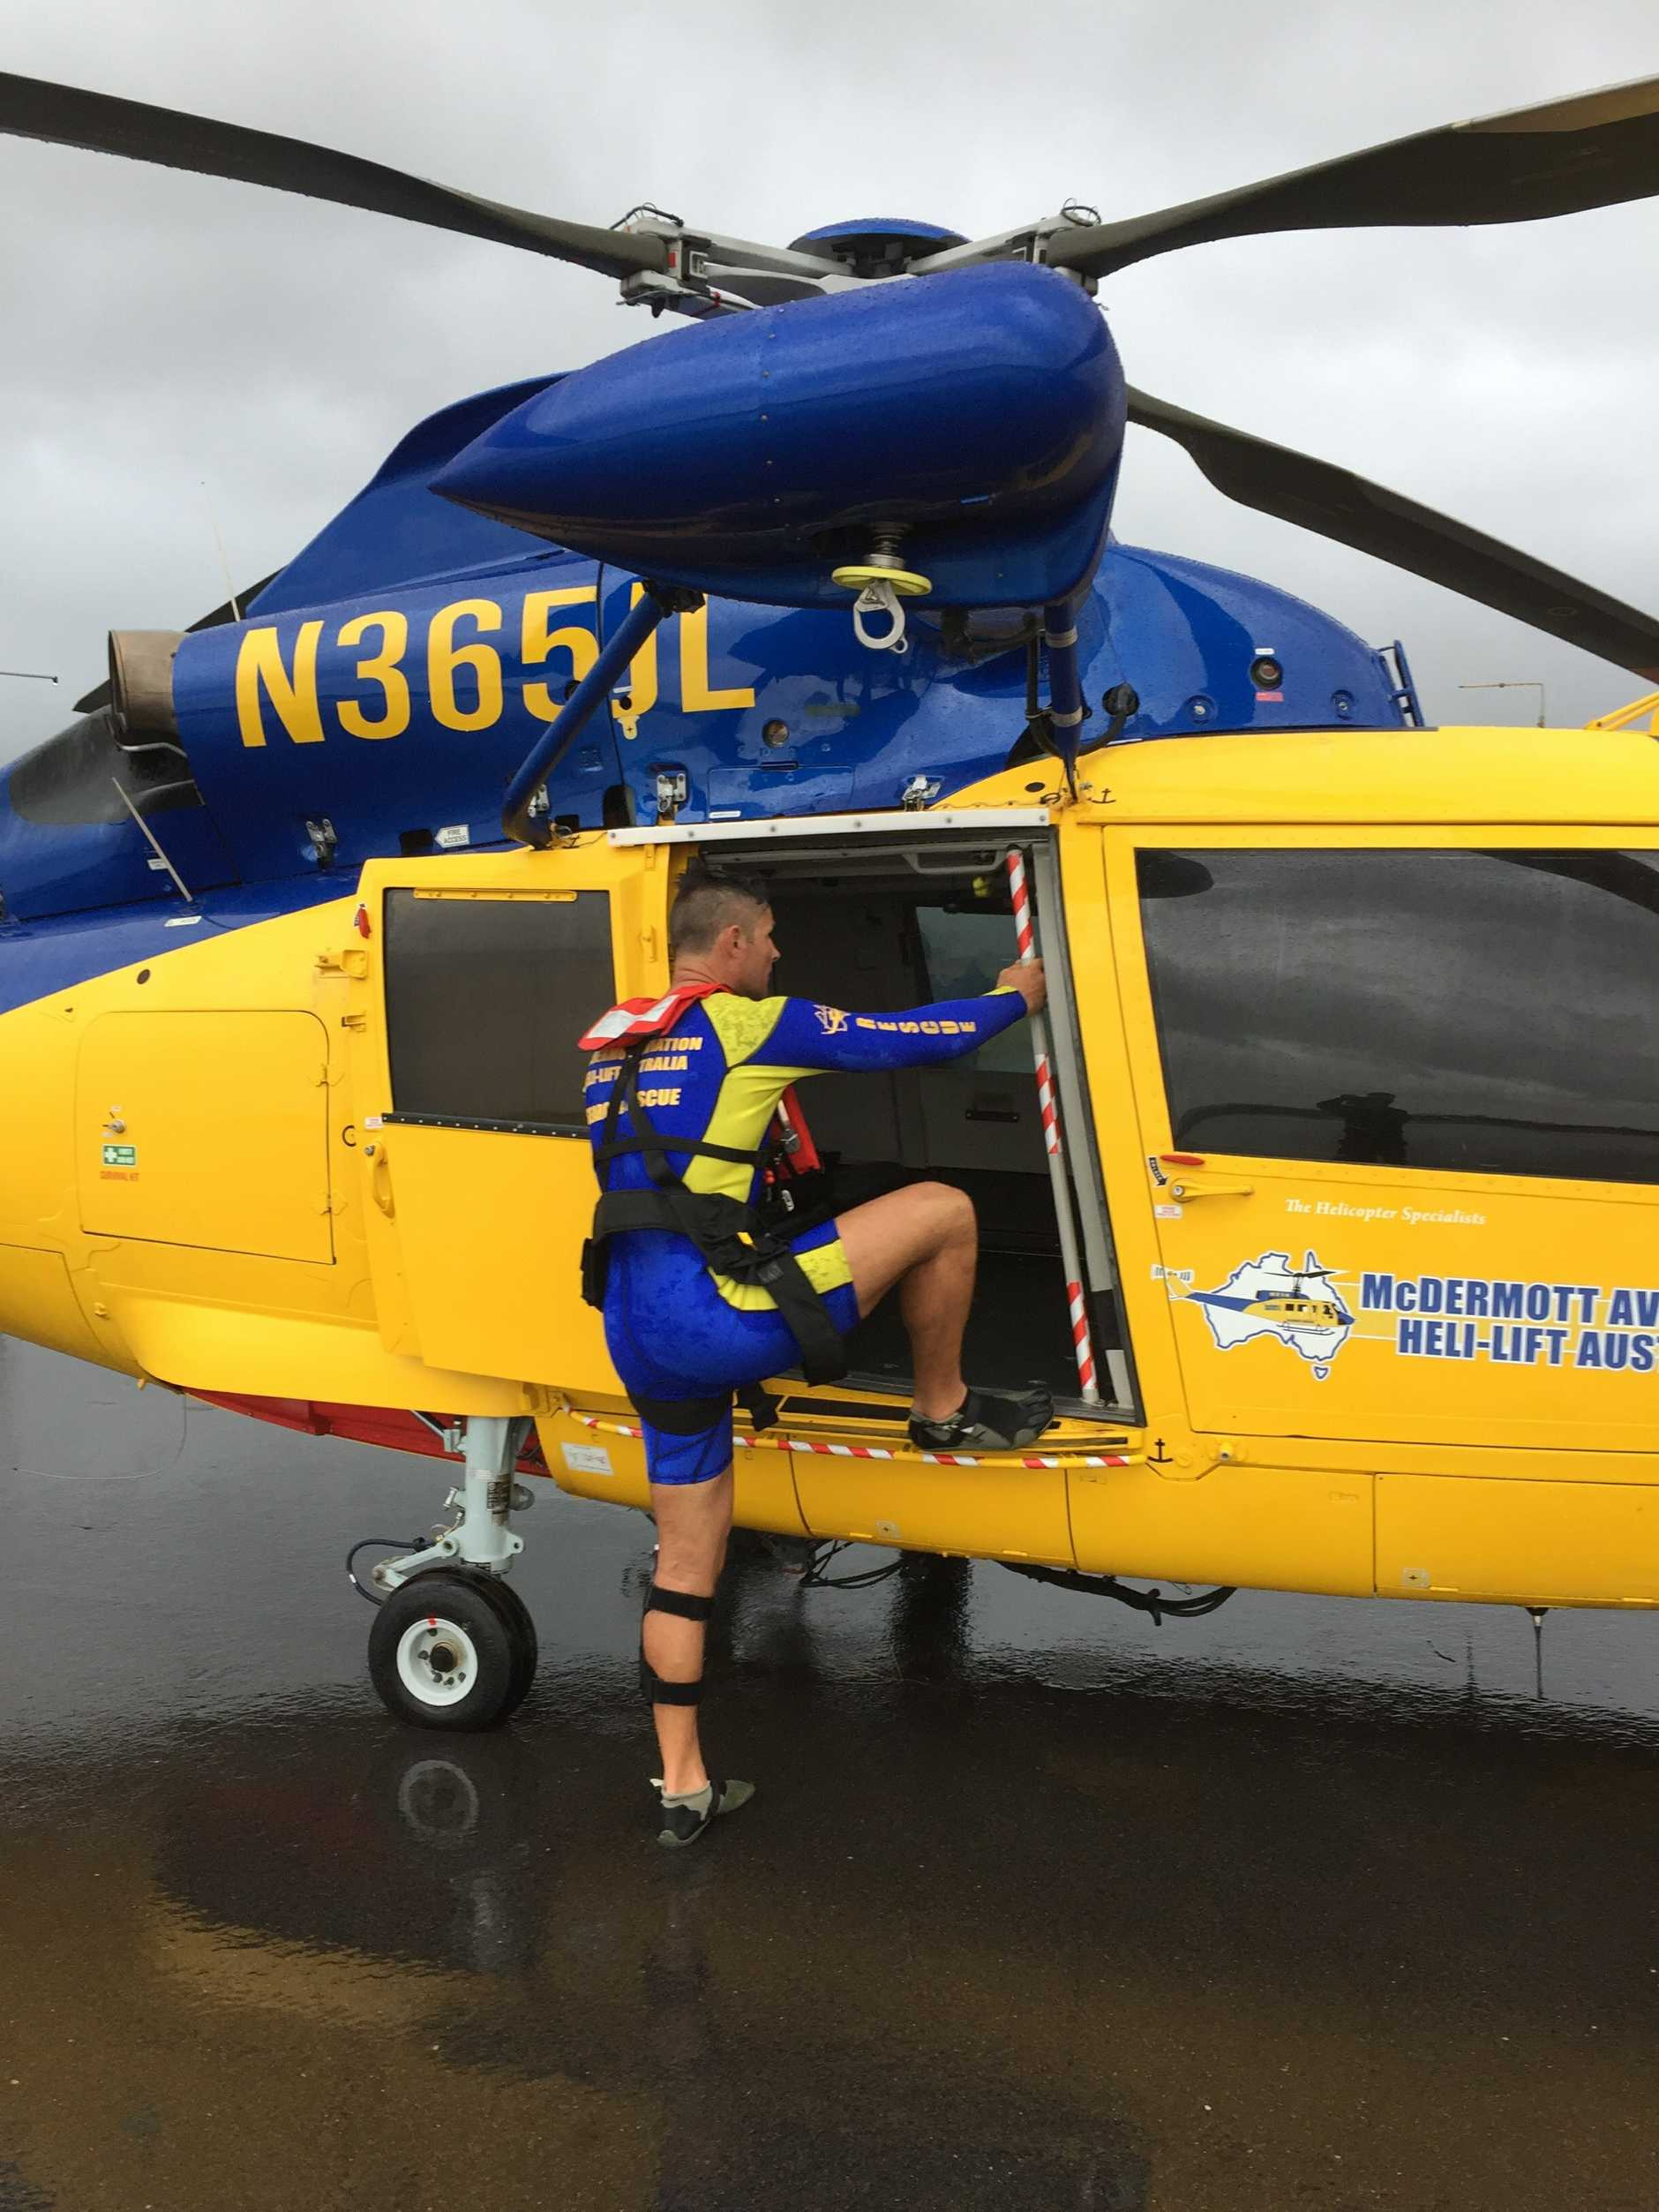 McDermott Aviation rescue swimmer professional Noosa lifeguard Isaac Smith boards a Dauphin helicopter on his way to a rescue at sea.